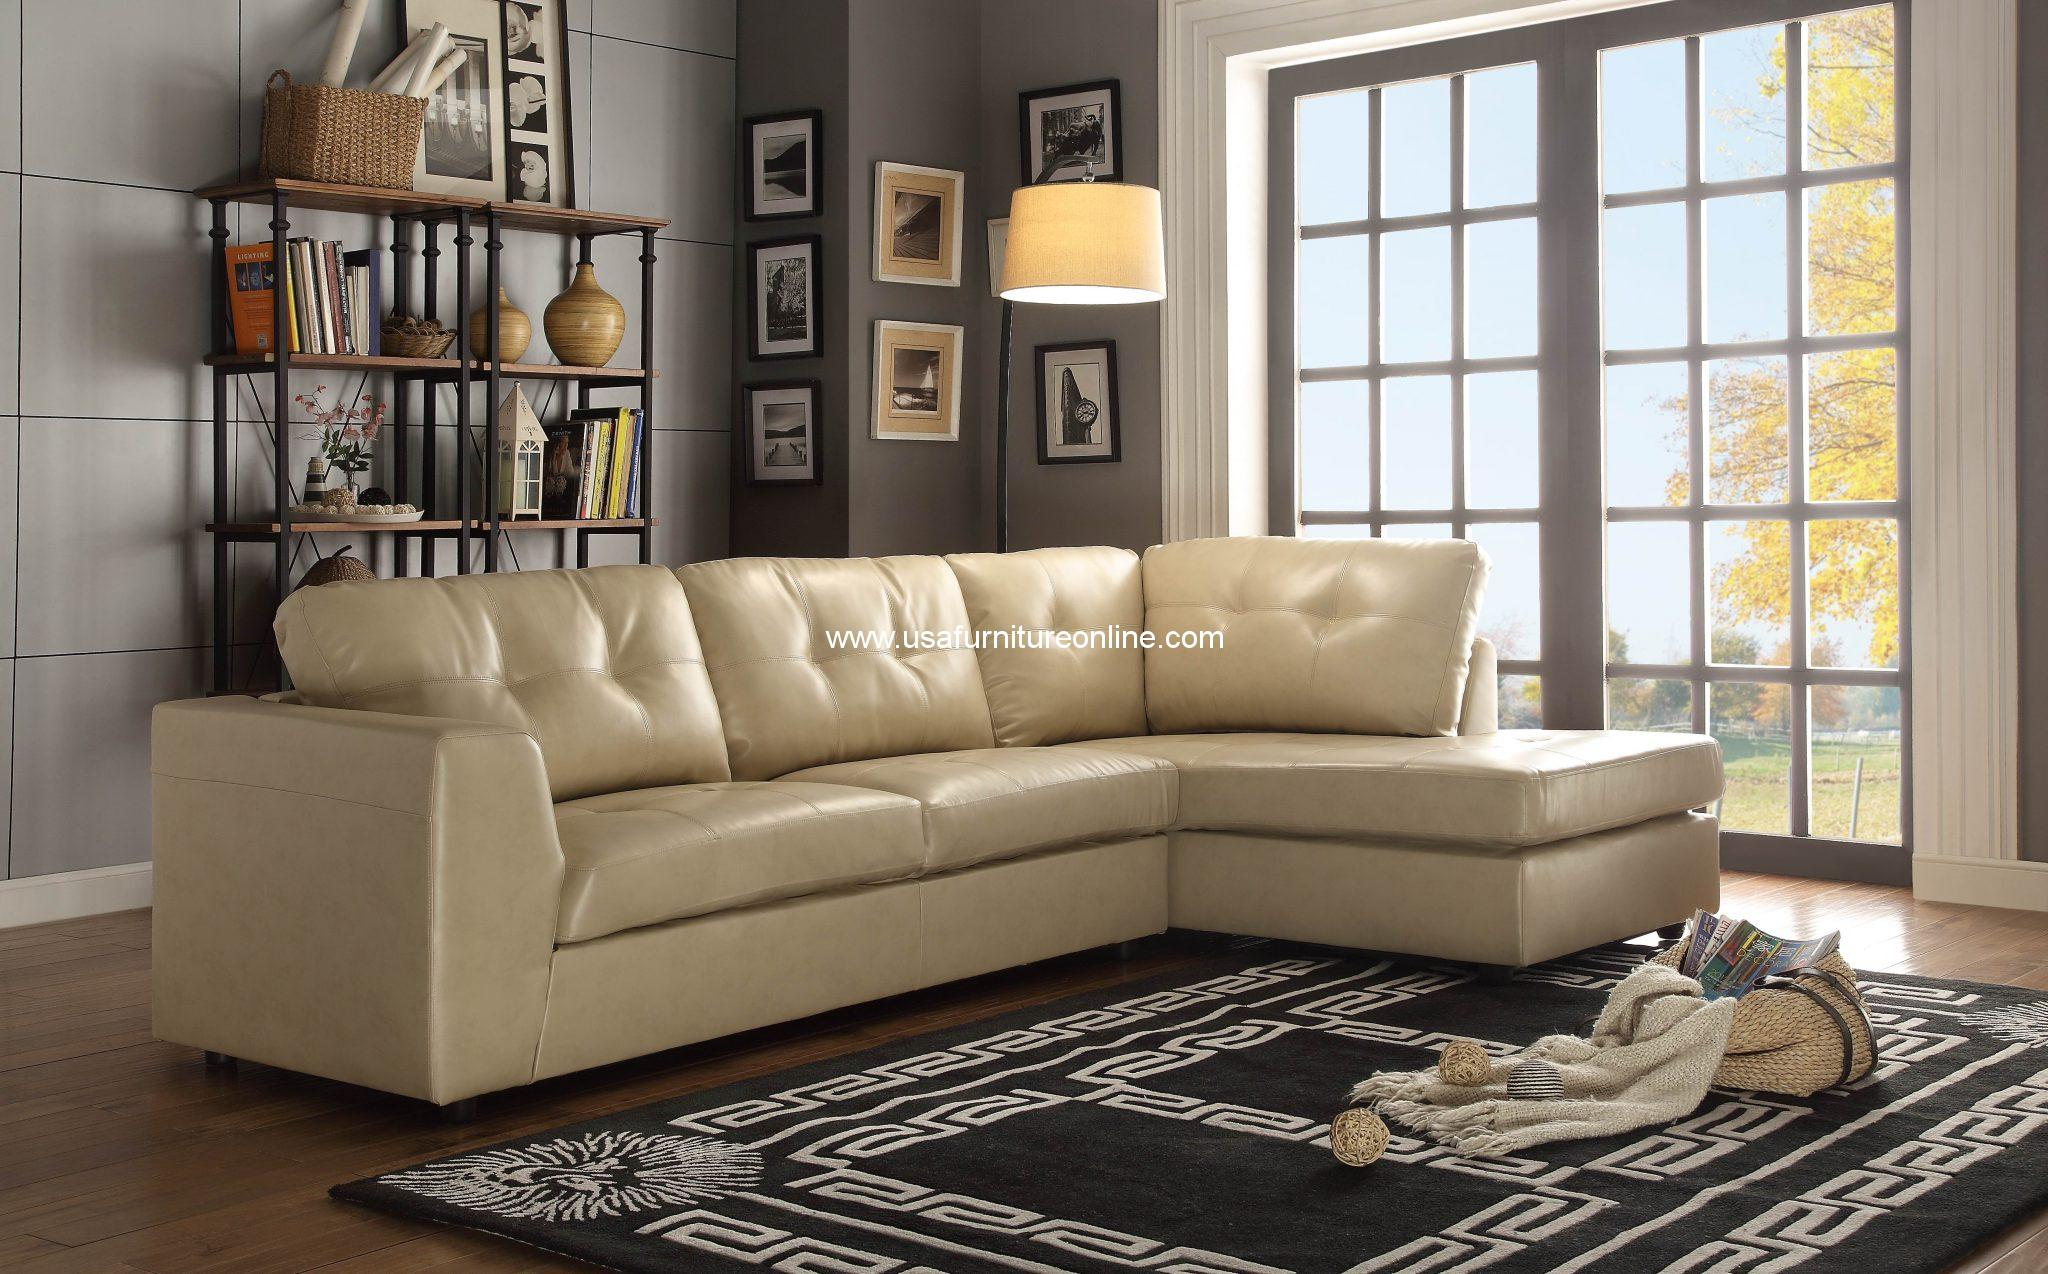 Springer Taupe Leather Sectional Sofa Set